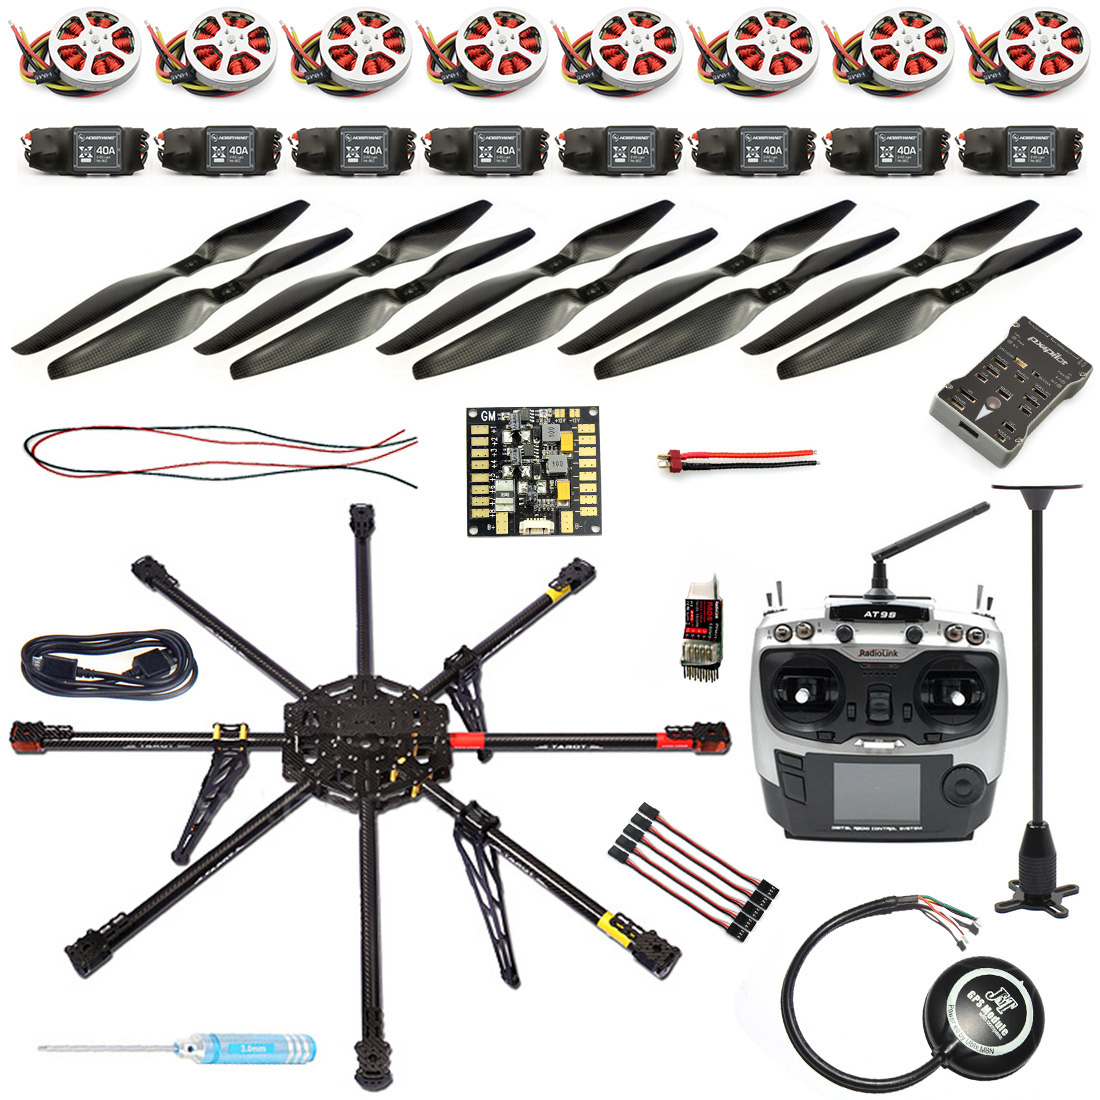 9CH 1000mm Carbon Octocopter Drone Kit With Color LED lamp And Multi Tone Buzzer Interface